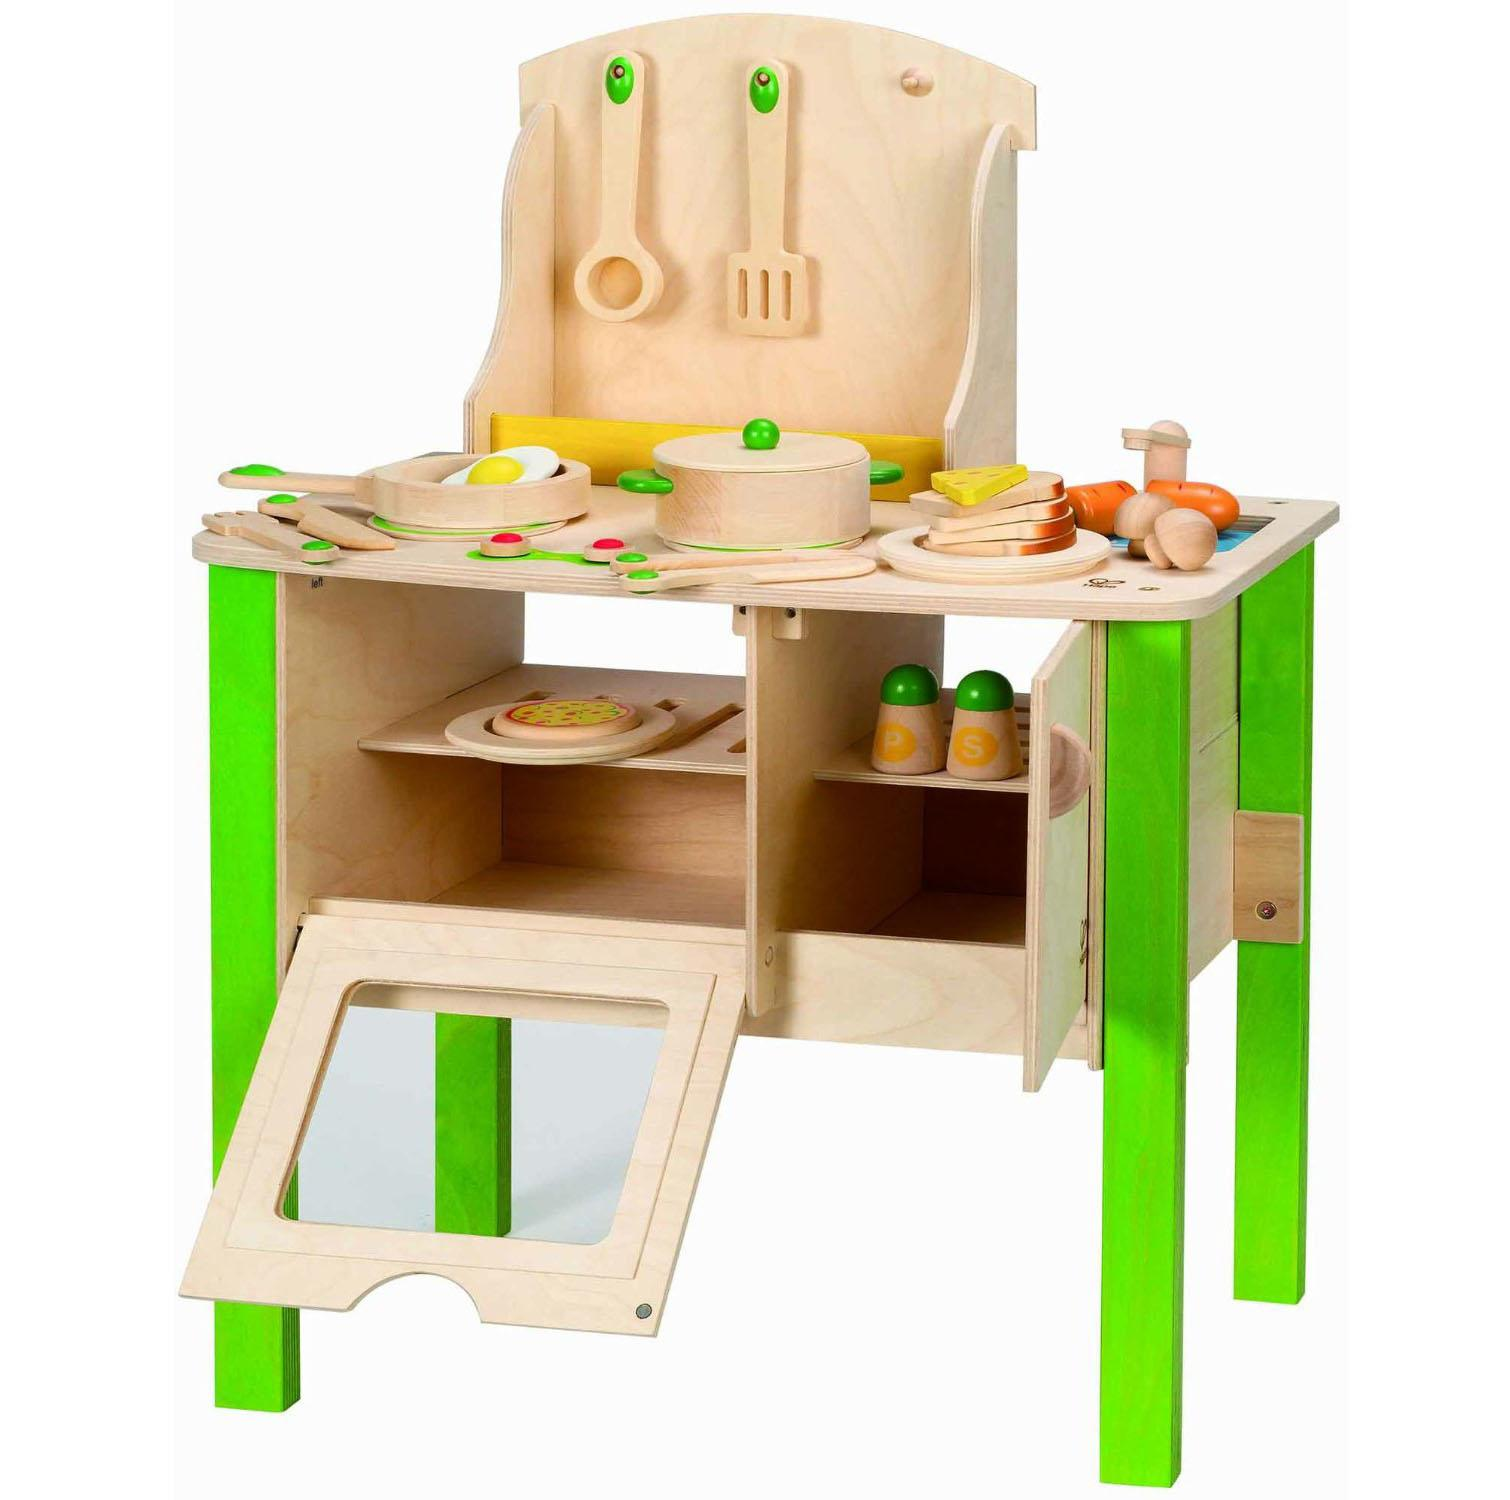 Hape Playfully Delicious Cook N Serve Kitchen Wooden Play Set